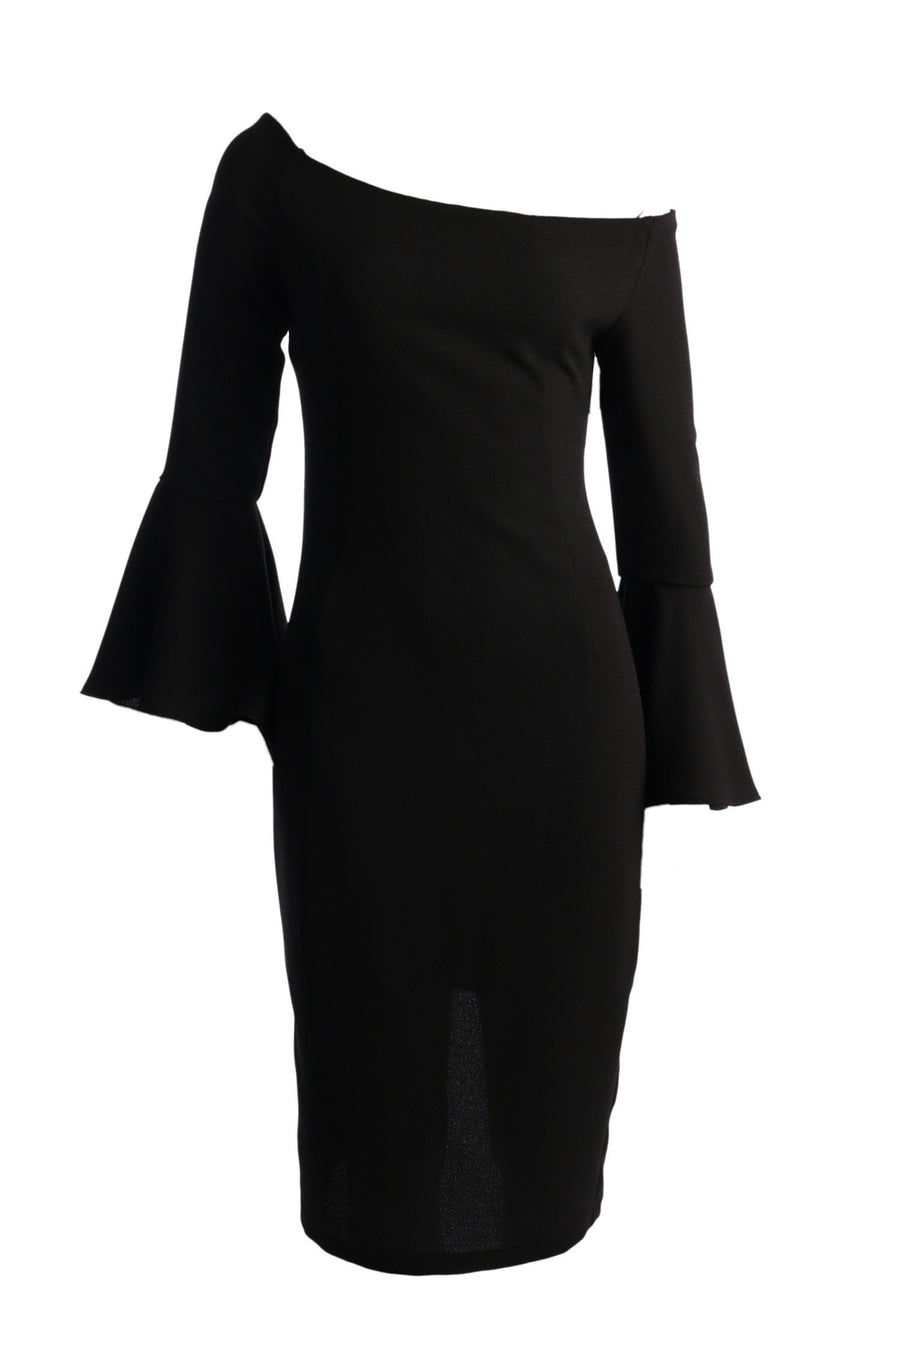 Shop Online Koula Dress in Black by Quba  Frockaholics Dresses